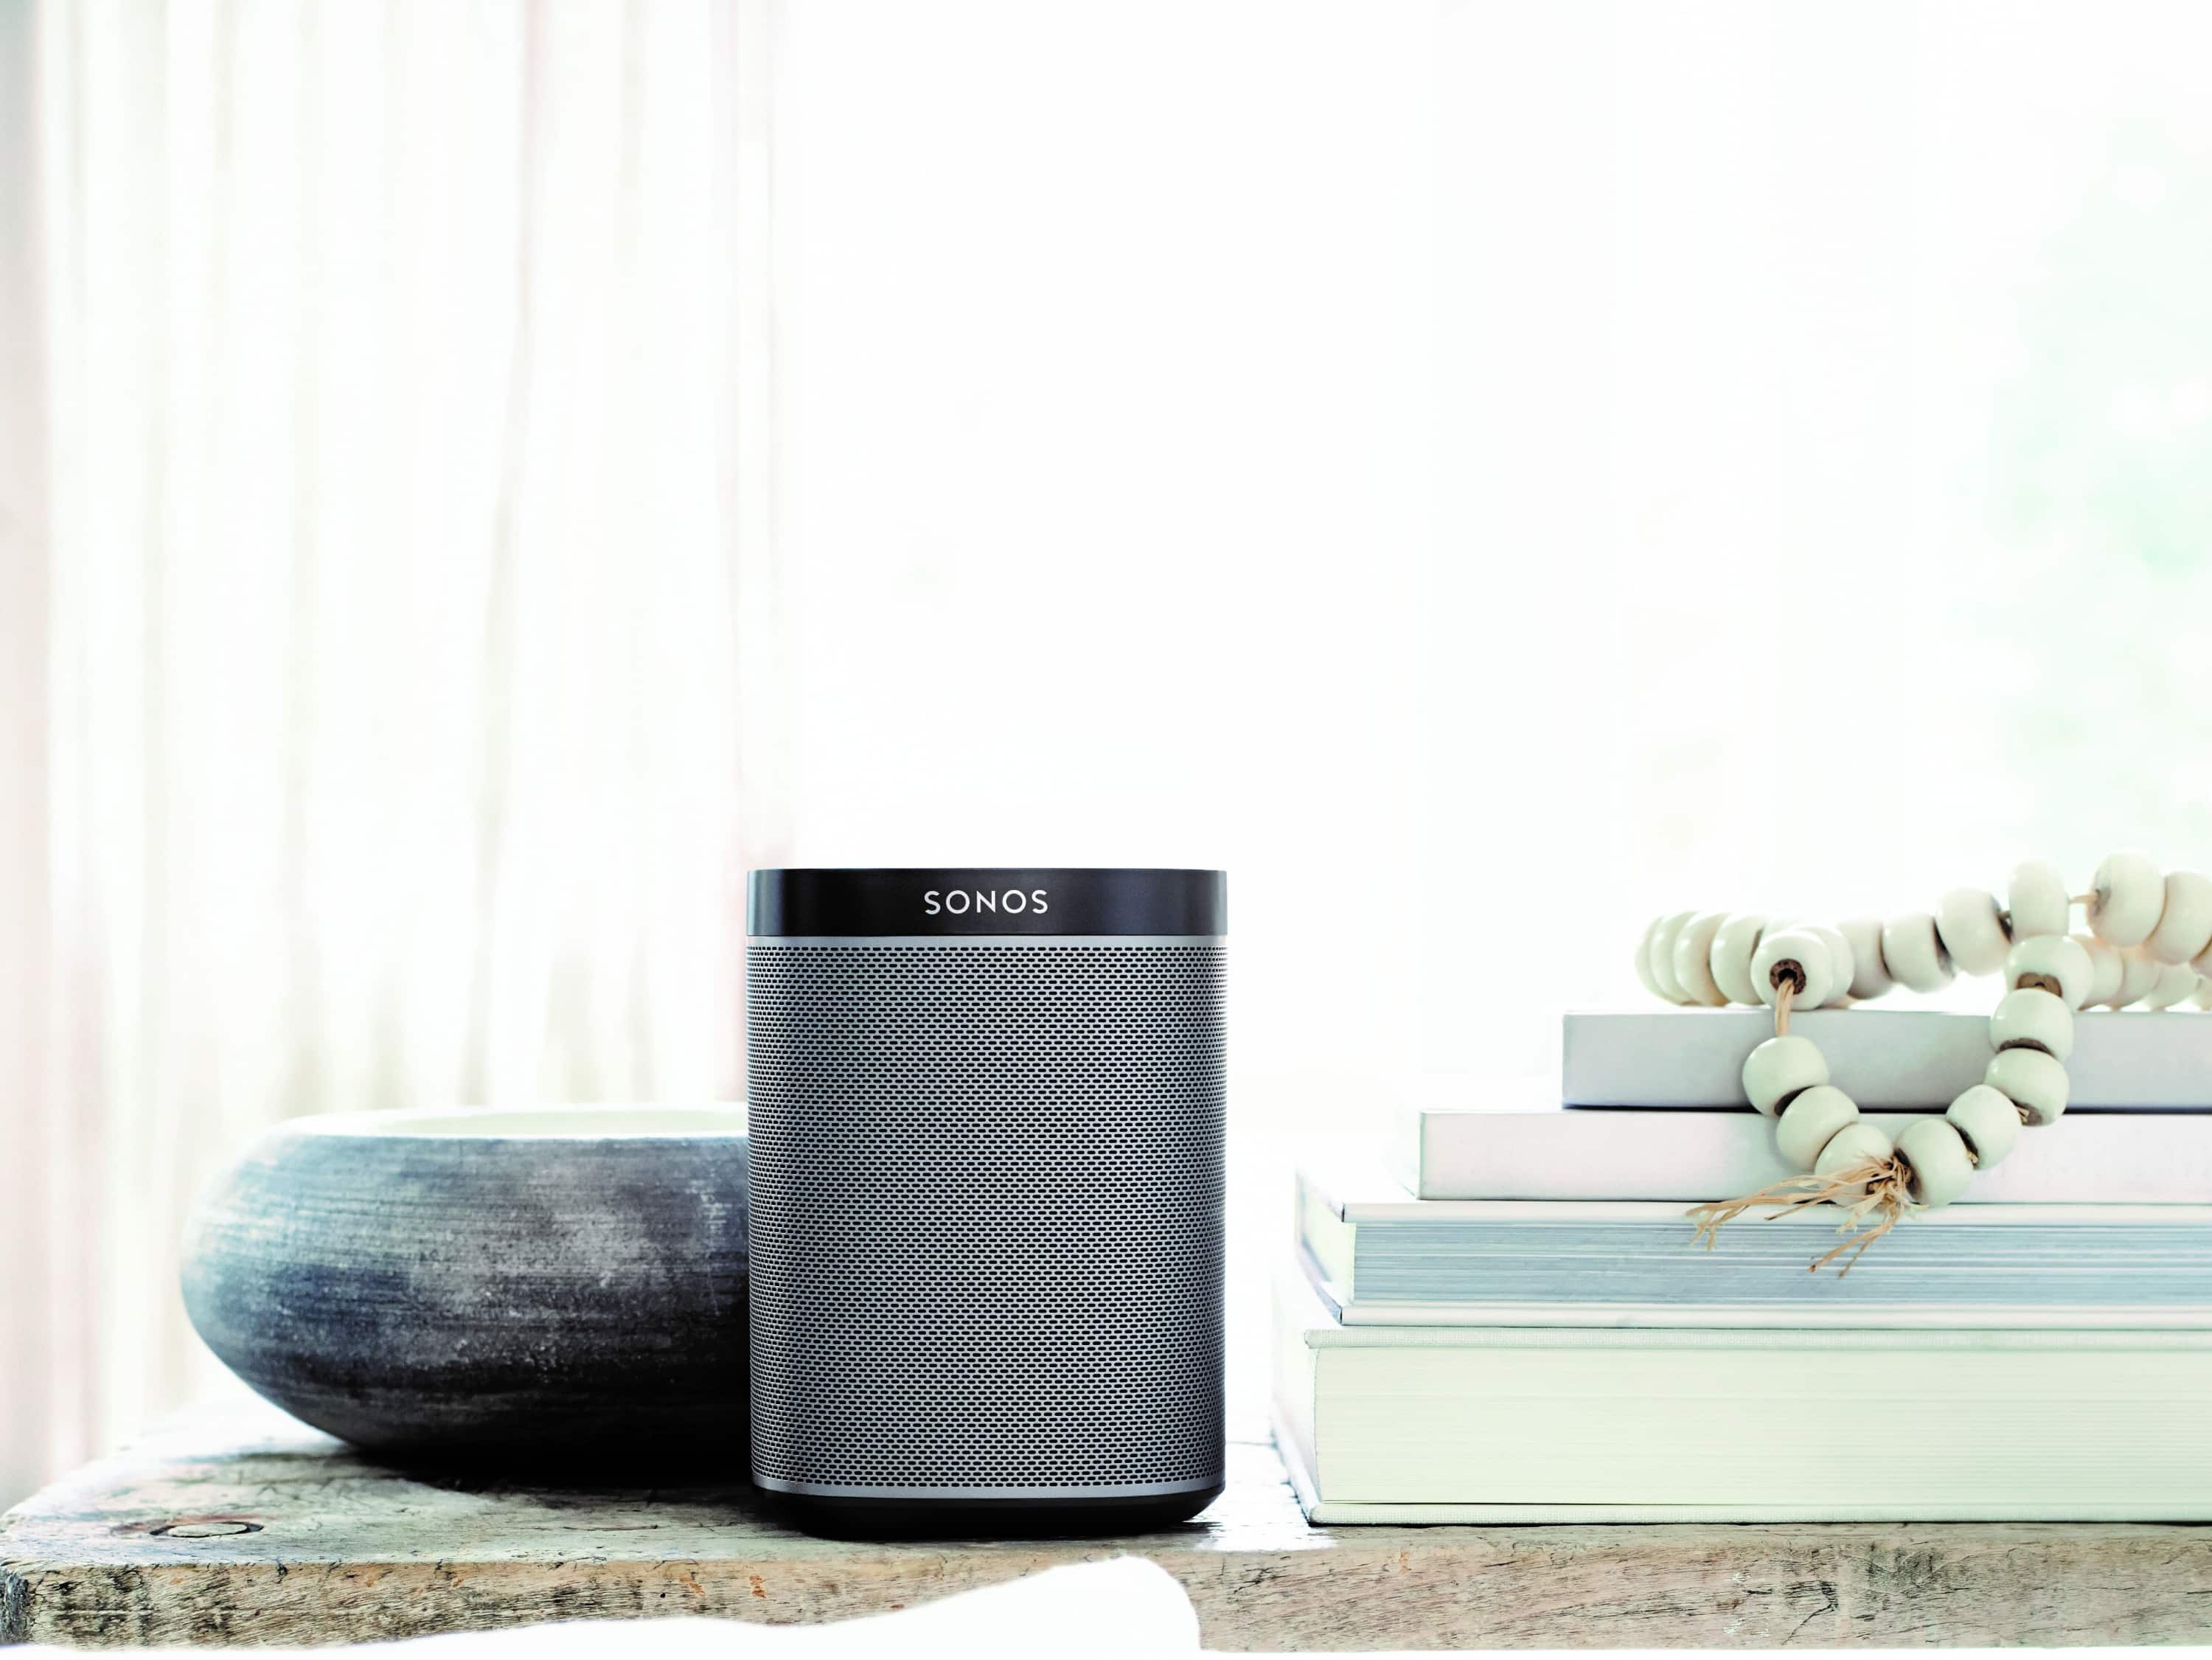 how to connect sonos to alexa amazon how to smart home geeks. Black Bedroom Furniture Sets. Home Design Ideas